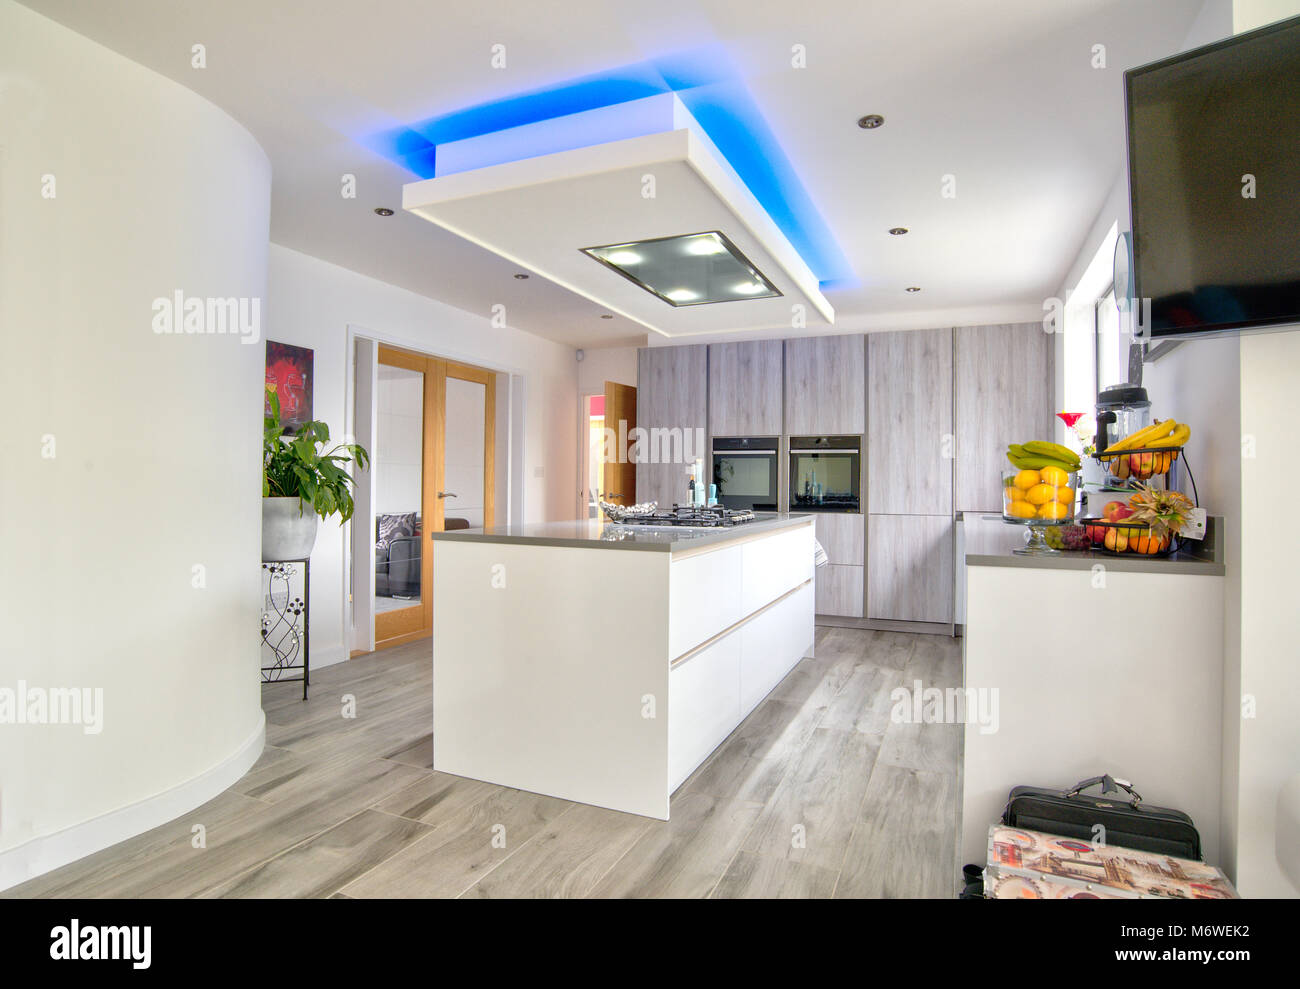 Modern home interior kitchen layout Stock Photo